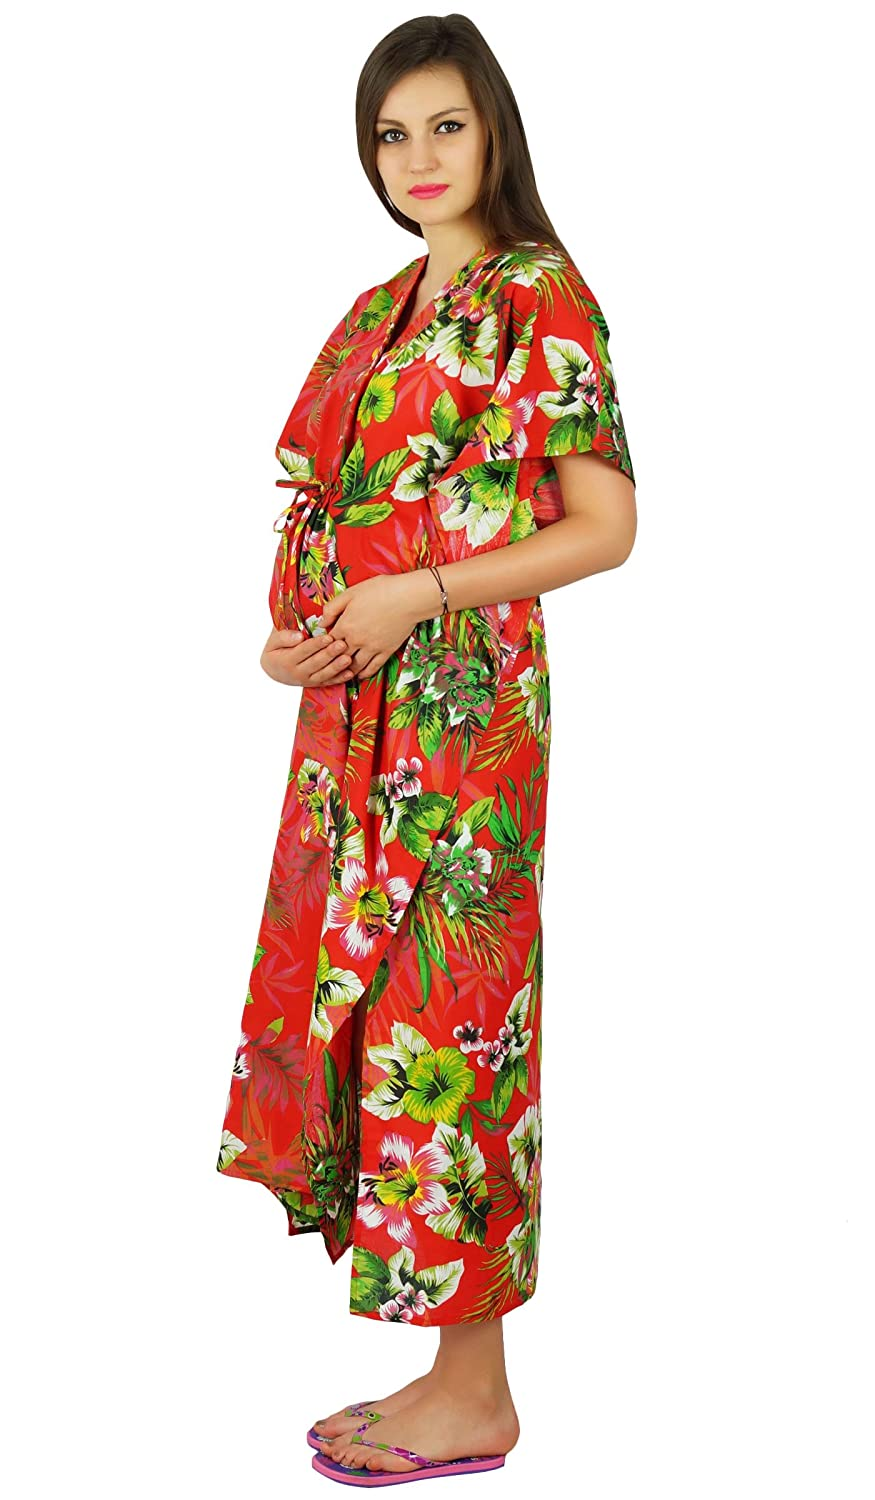 176059735fbf0 Bimba Nursing Cotton Kaftan Maternity Night Wear, Hospital Delivery Gown:  Amazon.ca: Clothing & Accessories